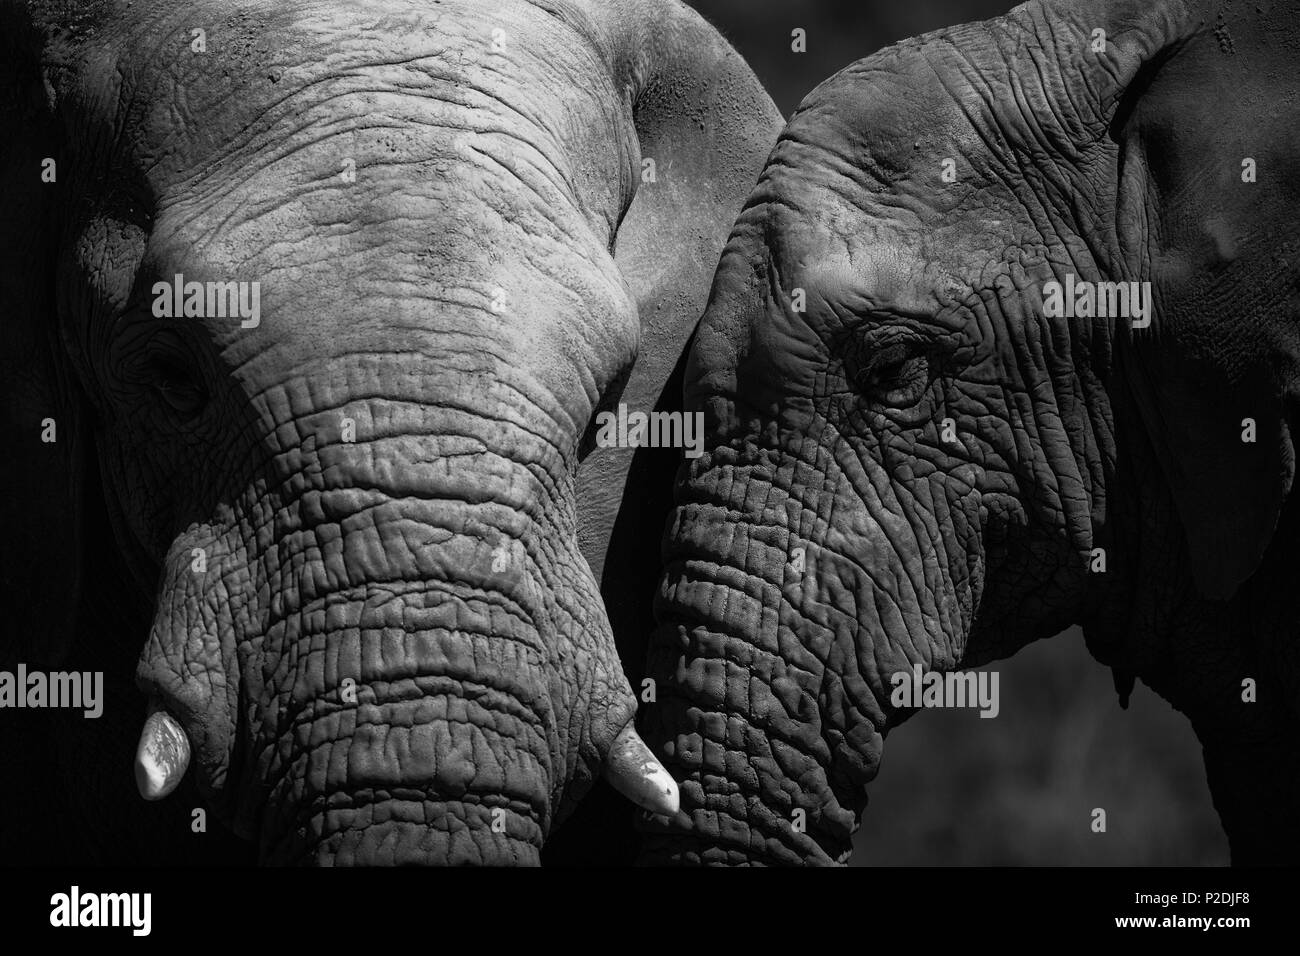 Two elephants mating in the forest - Stock Image